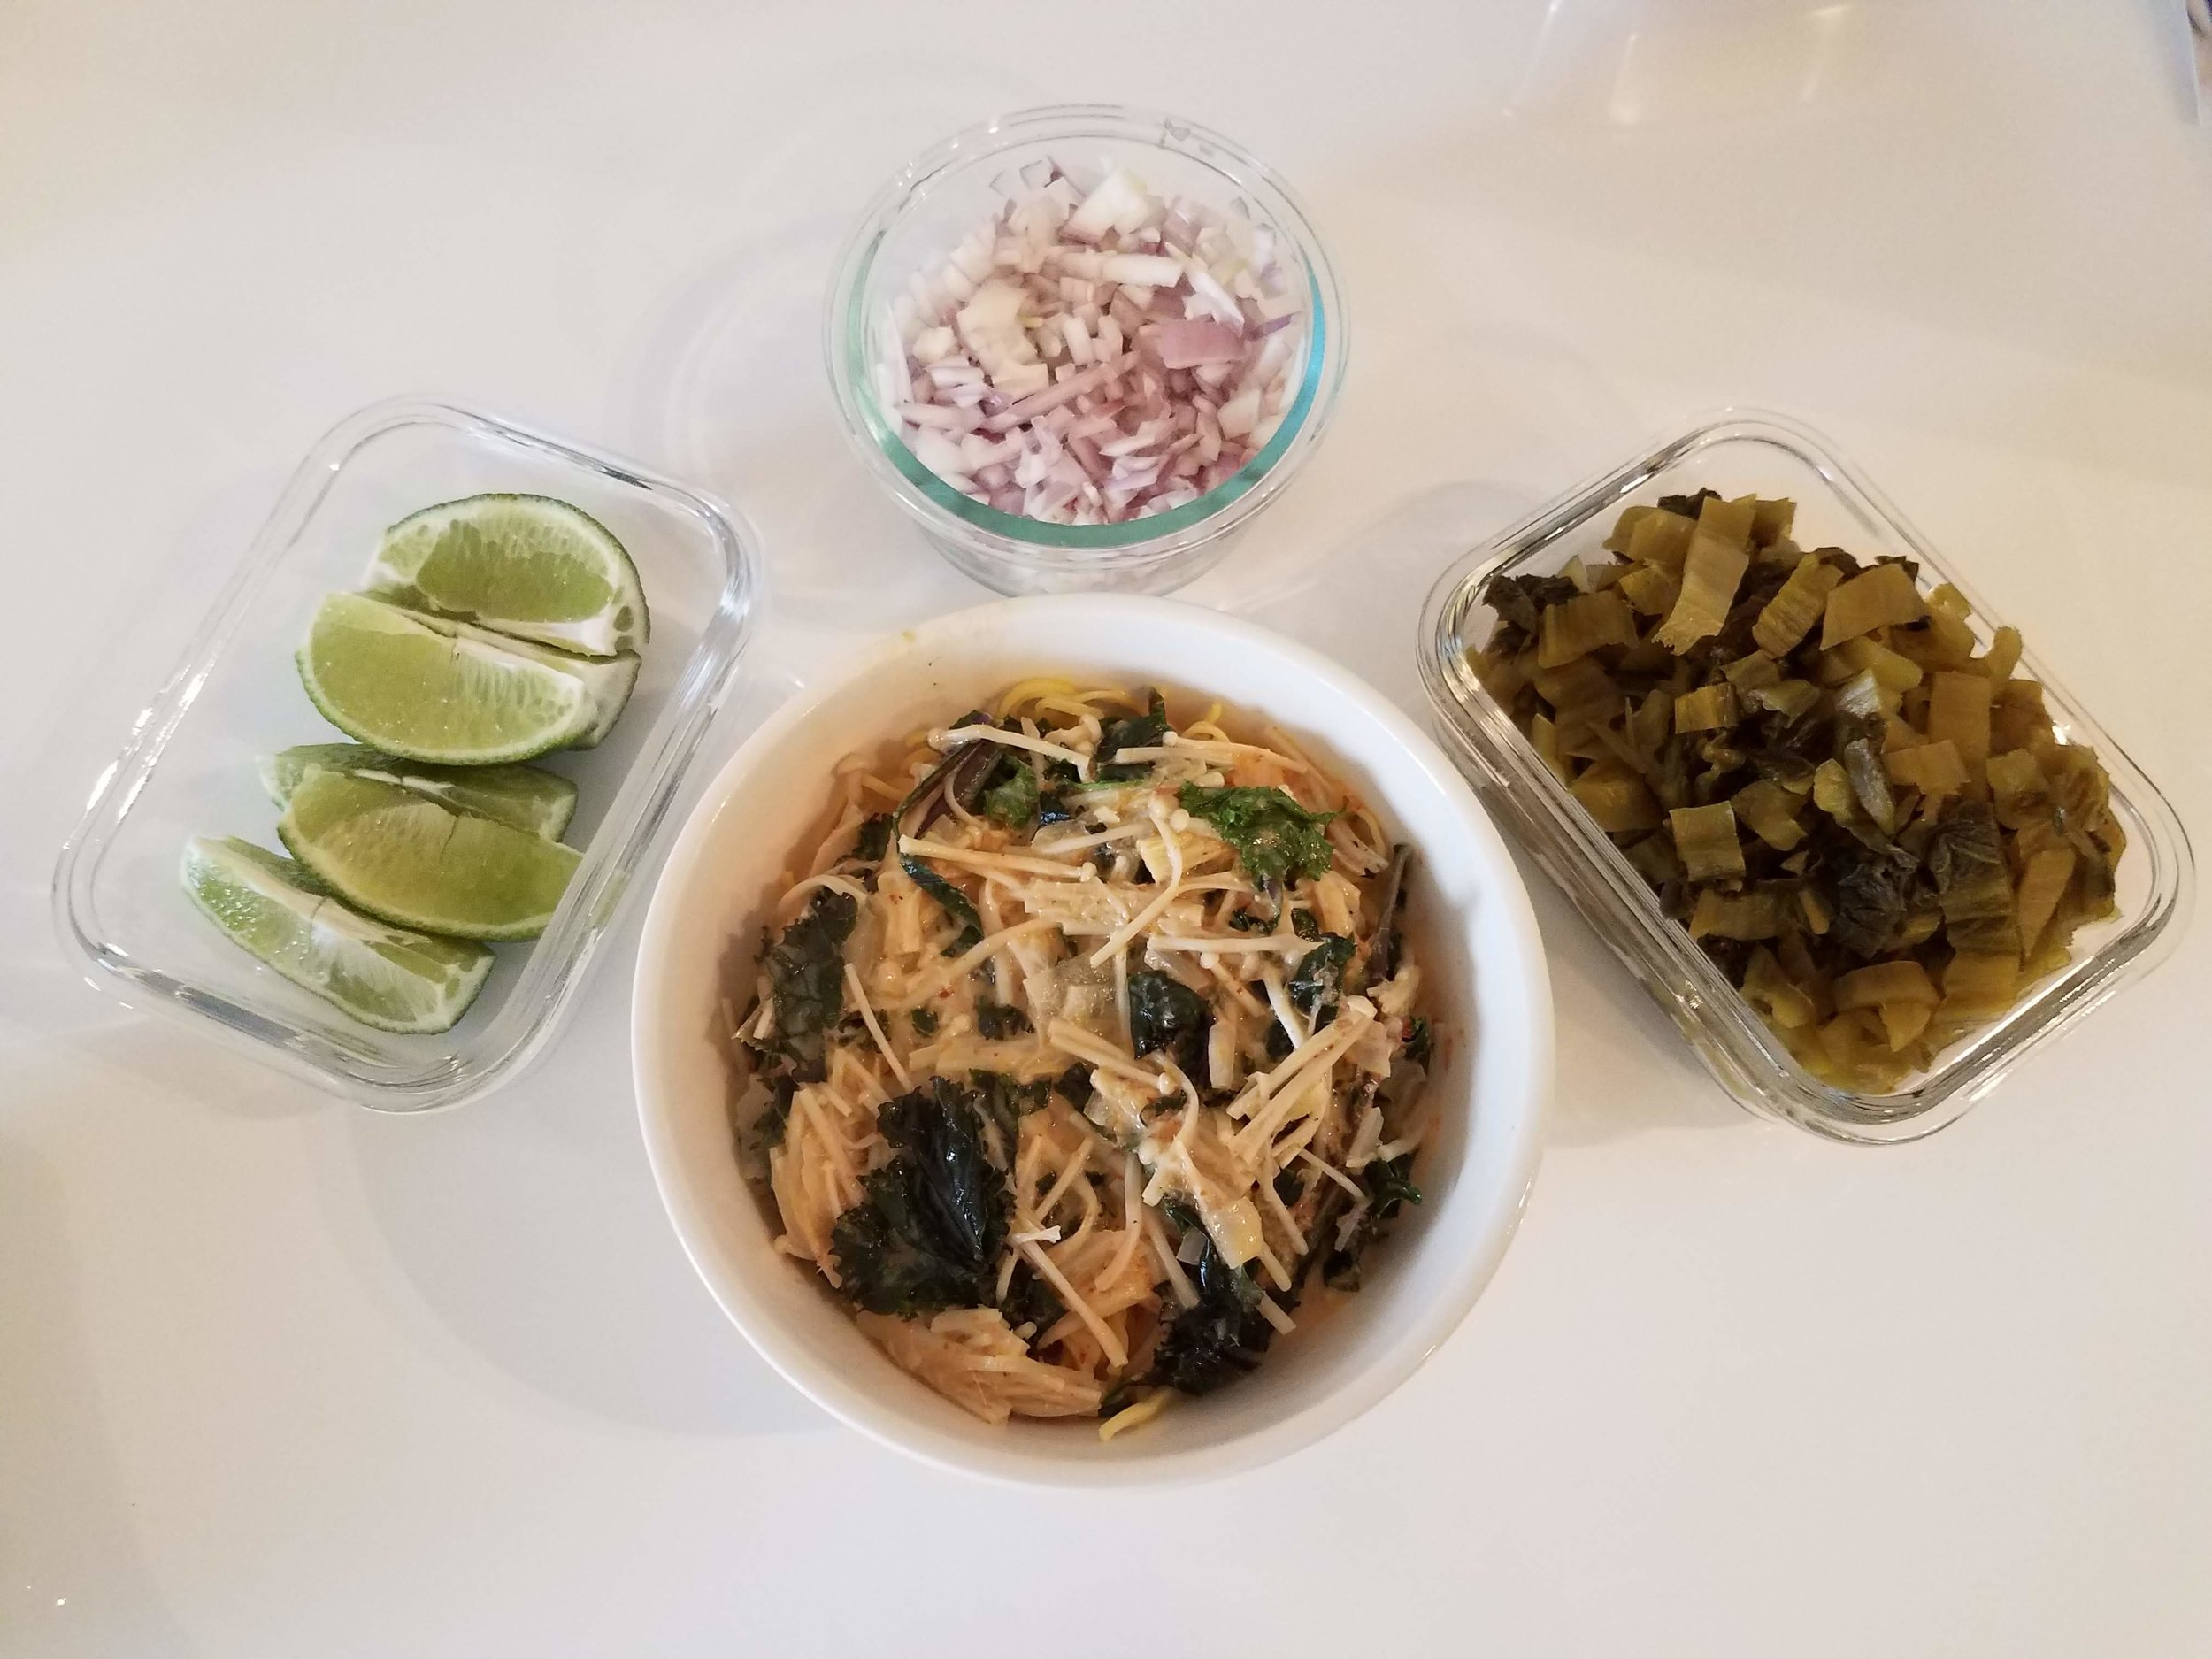 Yummiest homemade khao soi